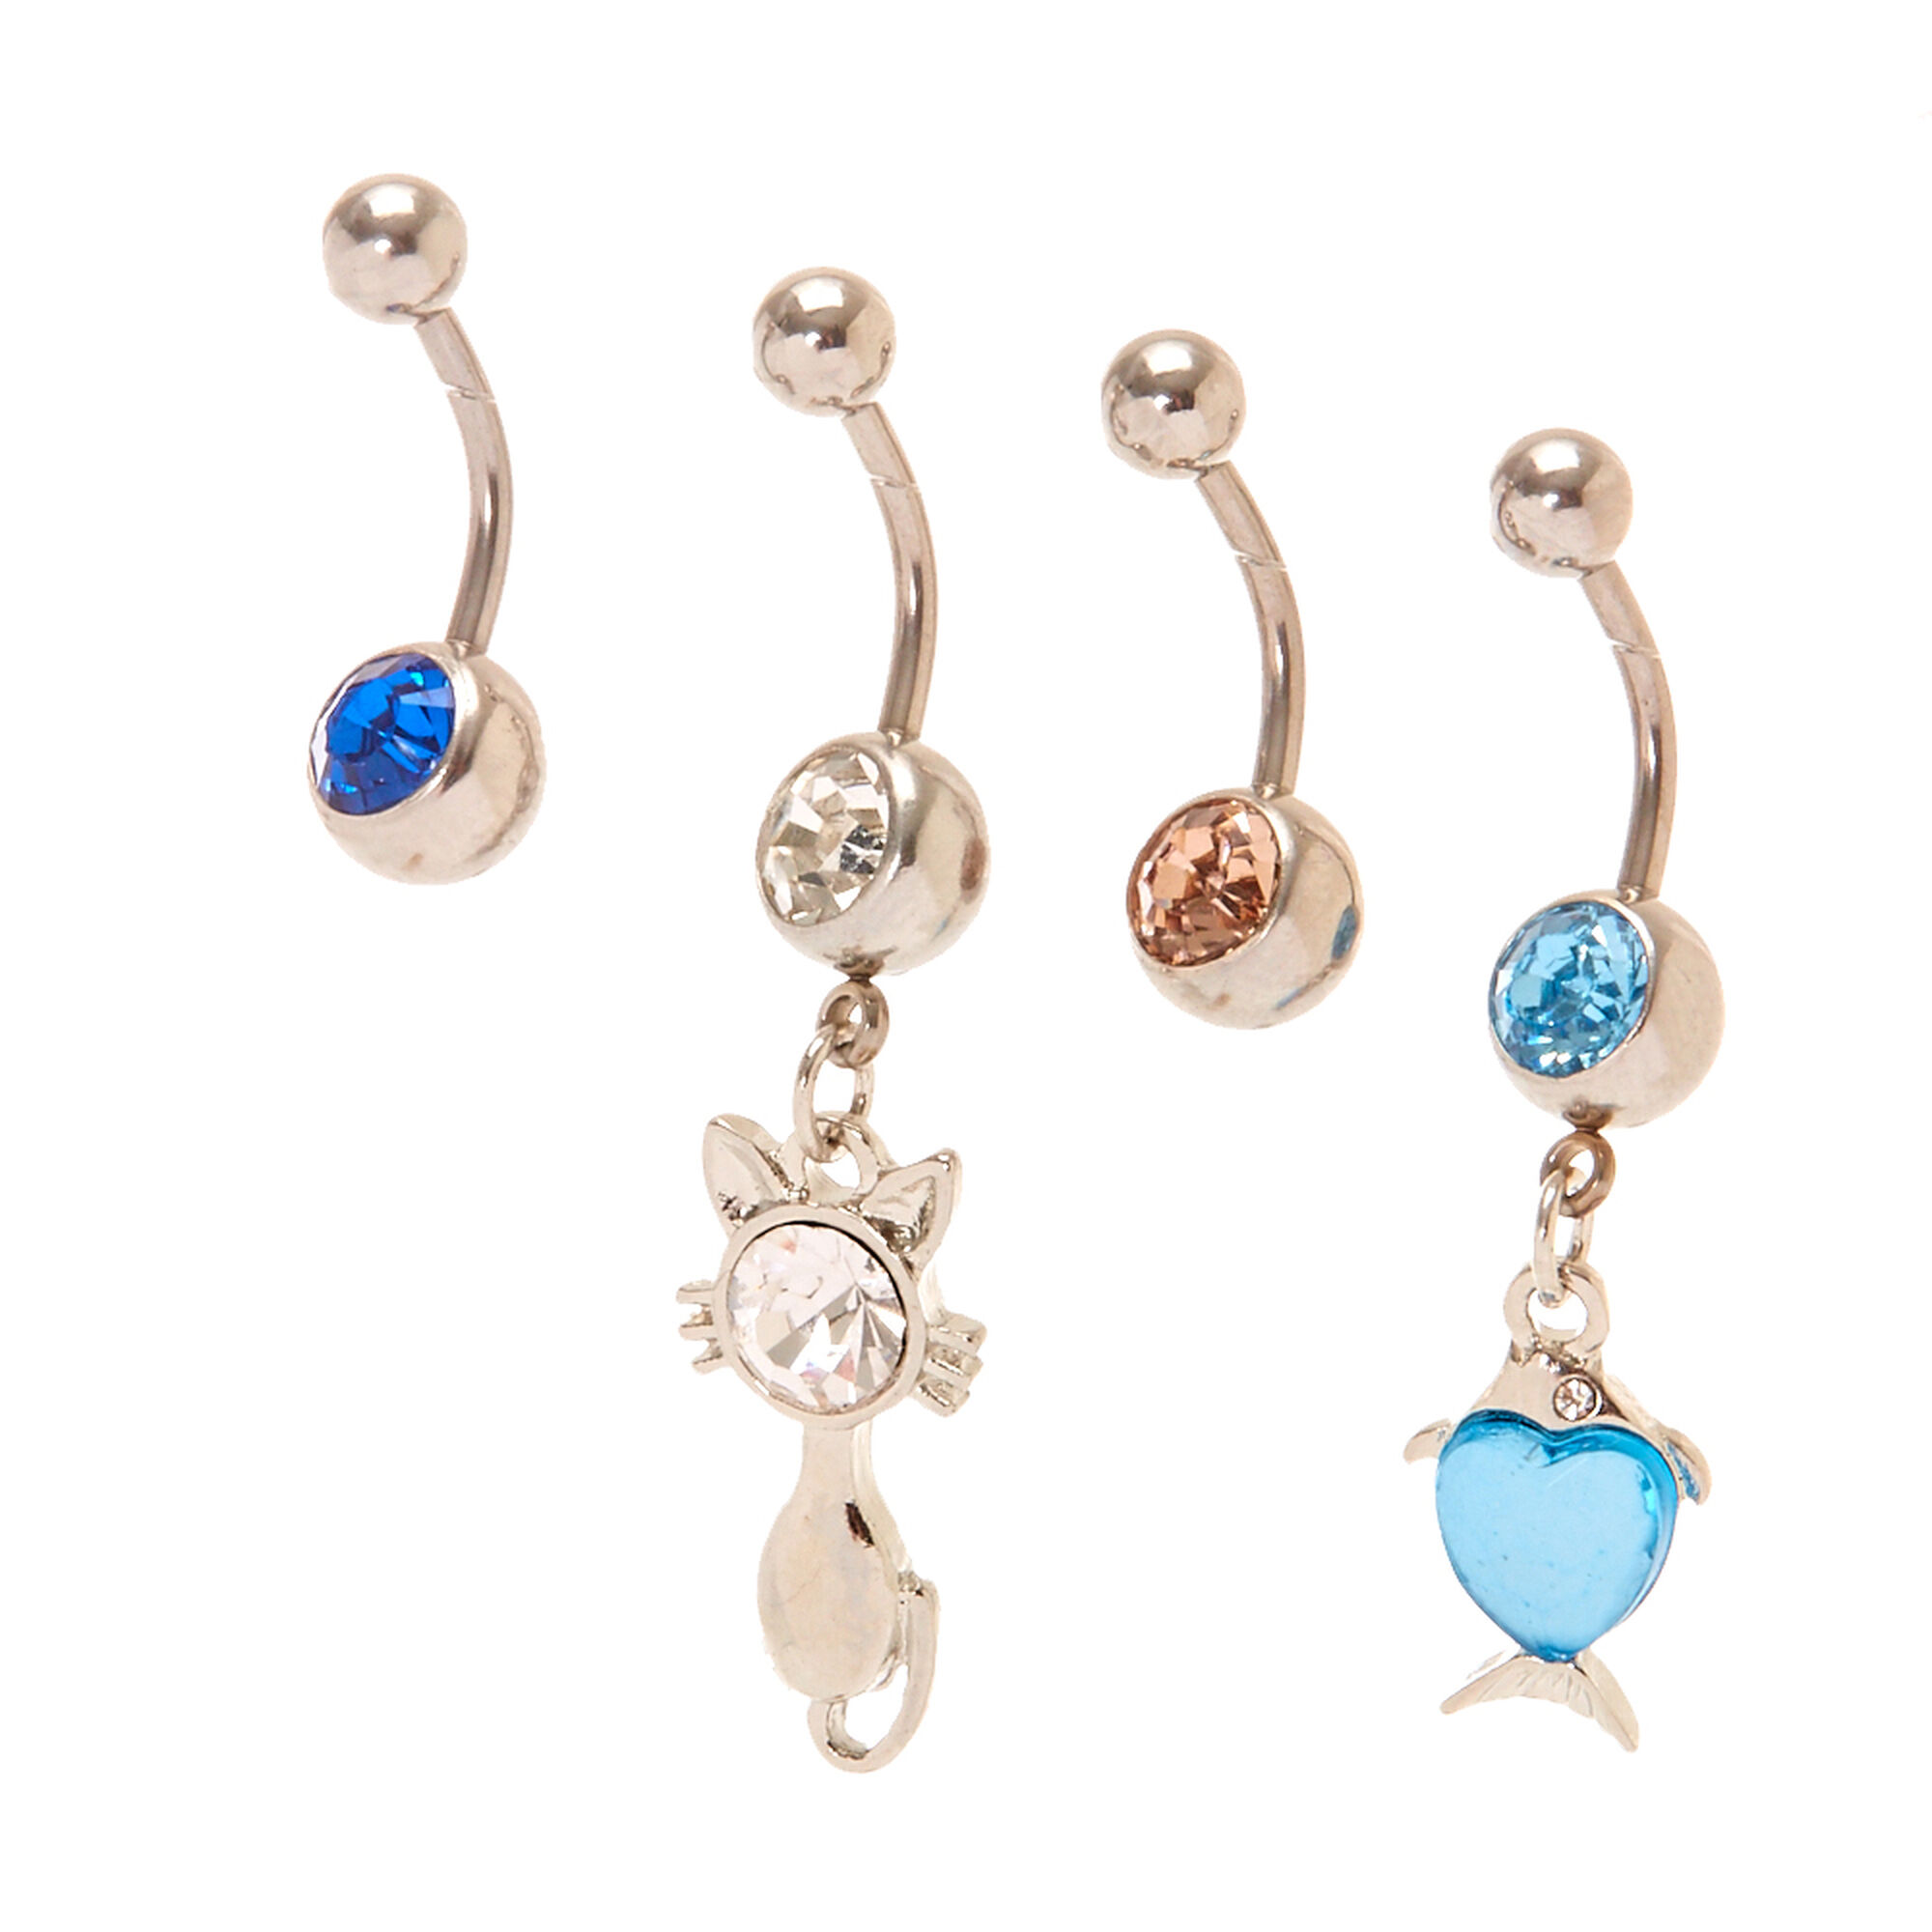 piece com piercing design body amazon of rings dp cool sexy navel surgical set mix steel made belly ball colors button diamond a titanium cute jewelry ring